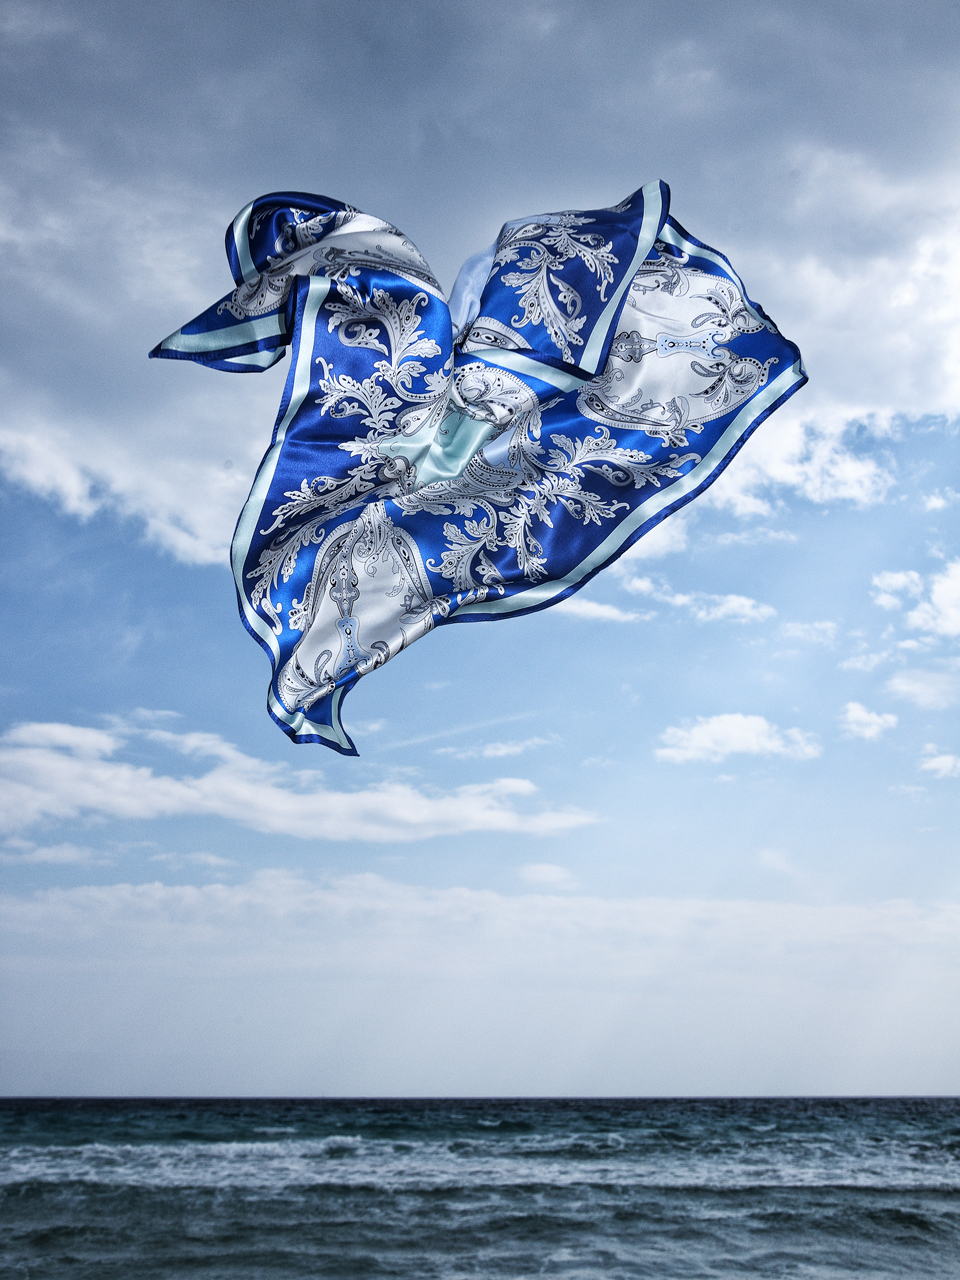 Sabine-Scheer-flying-silkscarf-on-location-stilllife